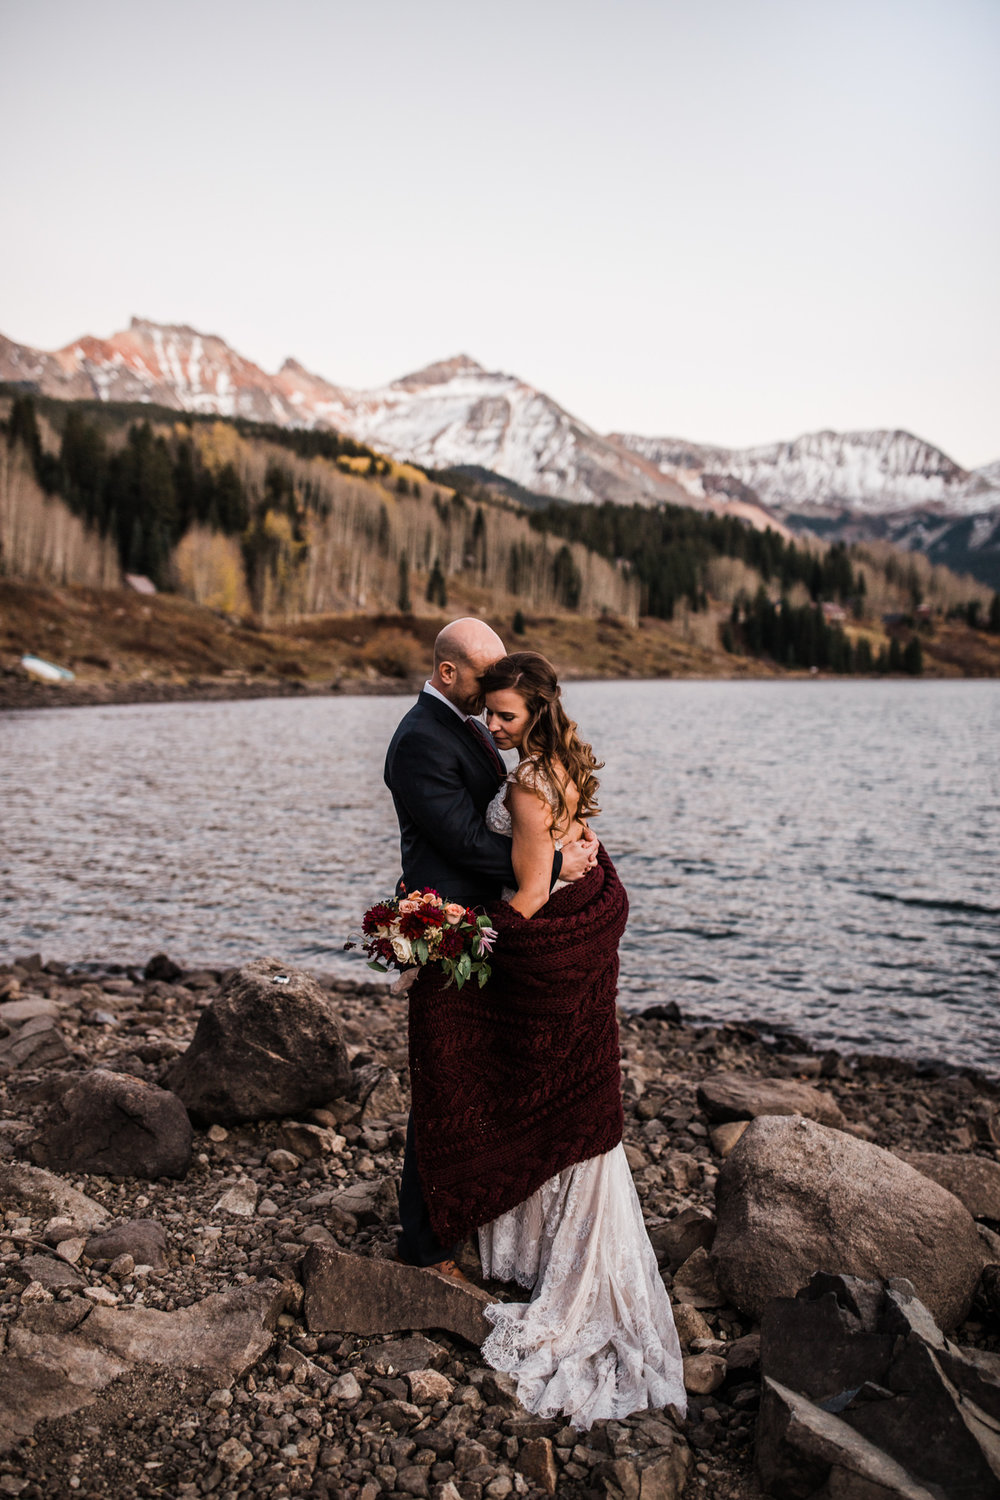 intimate elopement in telluride, colorado | destination adventure wedding photographers | the hearnes adventure photography | www.thehearnes.com